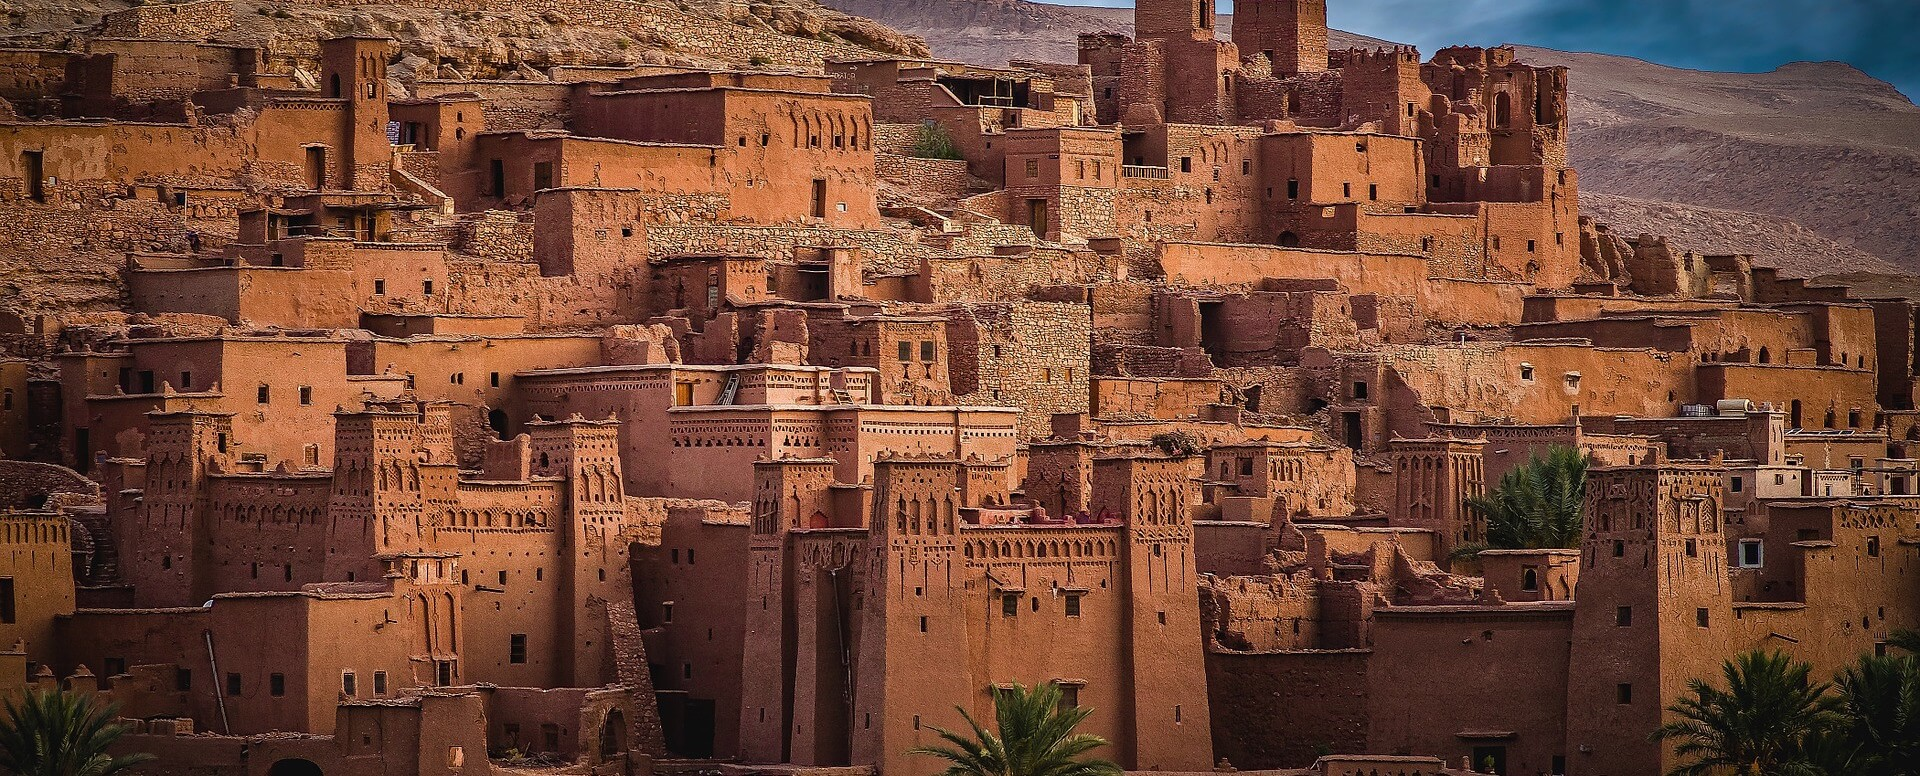 10 things to do in Morocco - Morocco